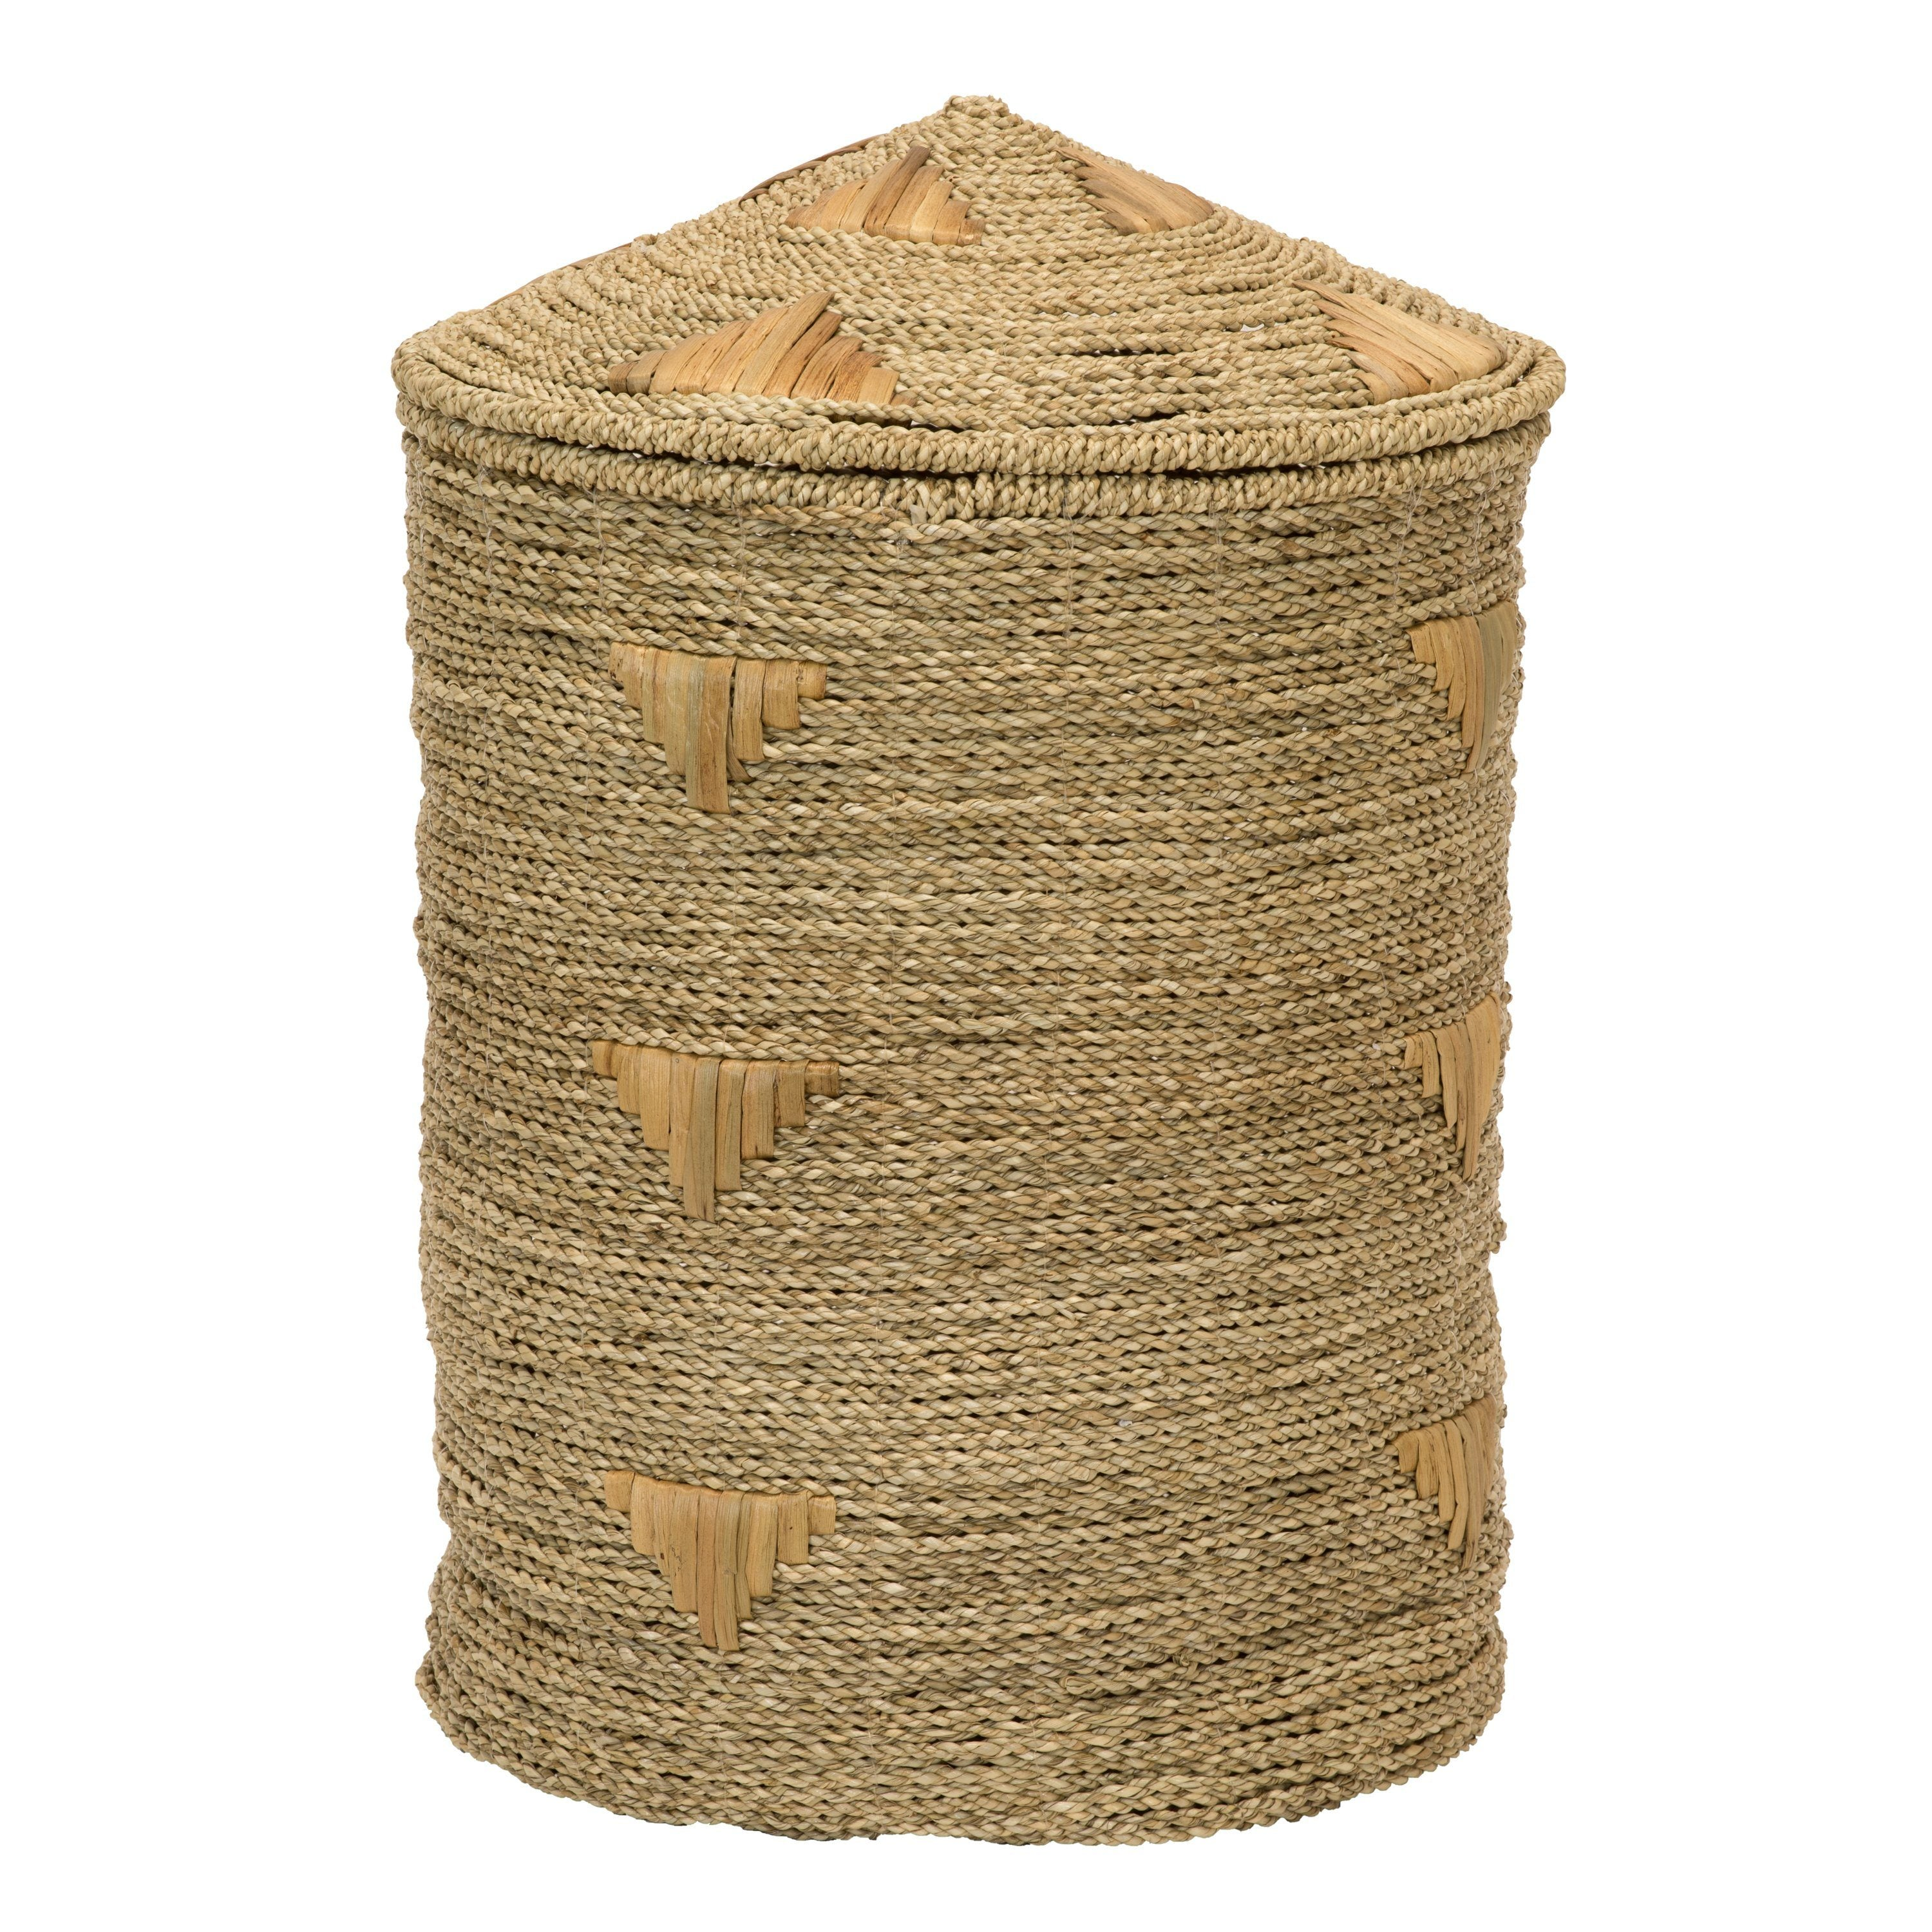 Sonora Lidded Basket - Project Nursery